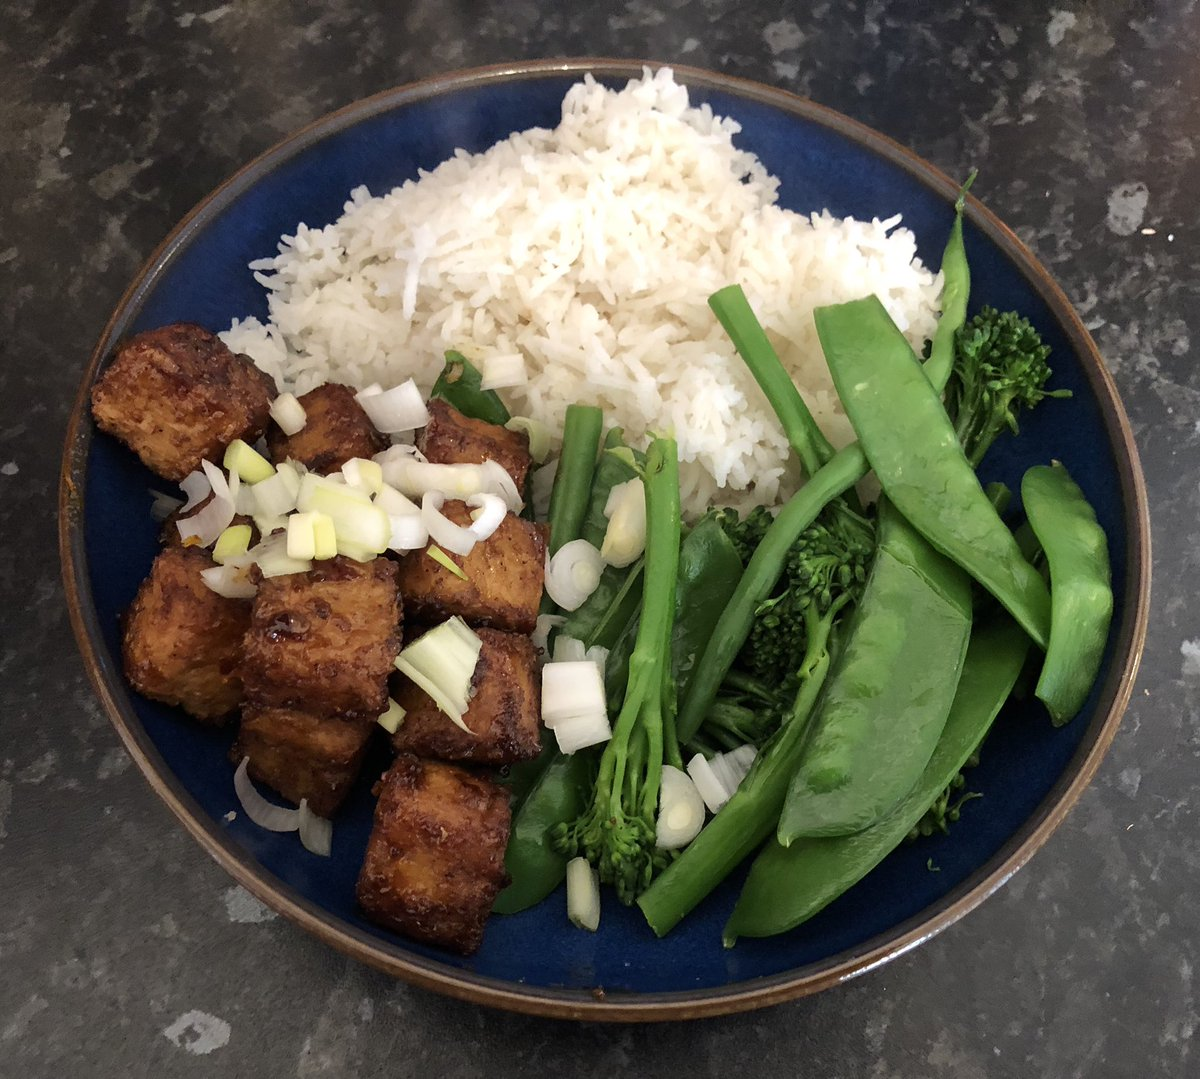 Some photos of week one! #vegan #veganuary <br>http://pic.twitter.com/2d3XIoDMrH